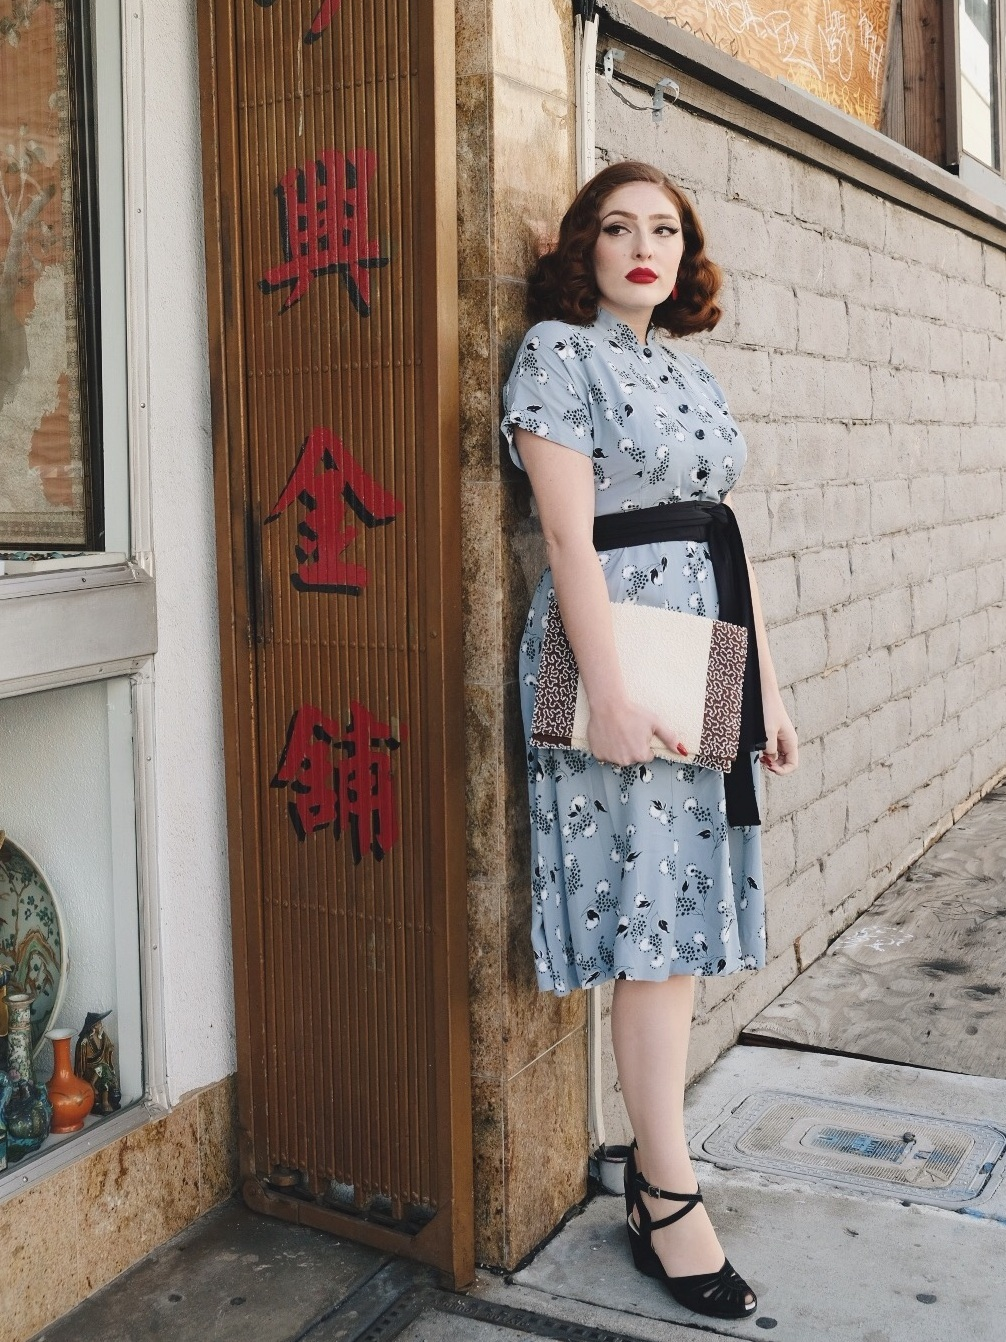 Woman in vintage blue dress standing by Chinatown storefront